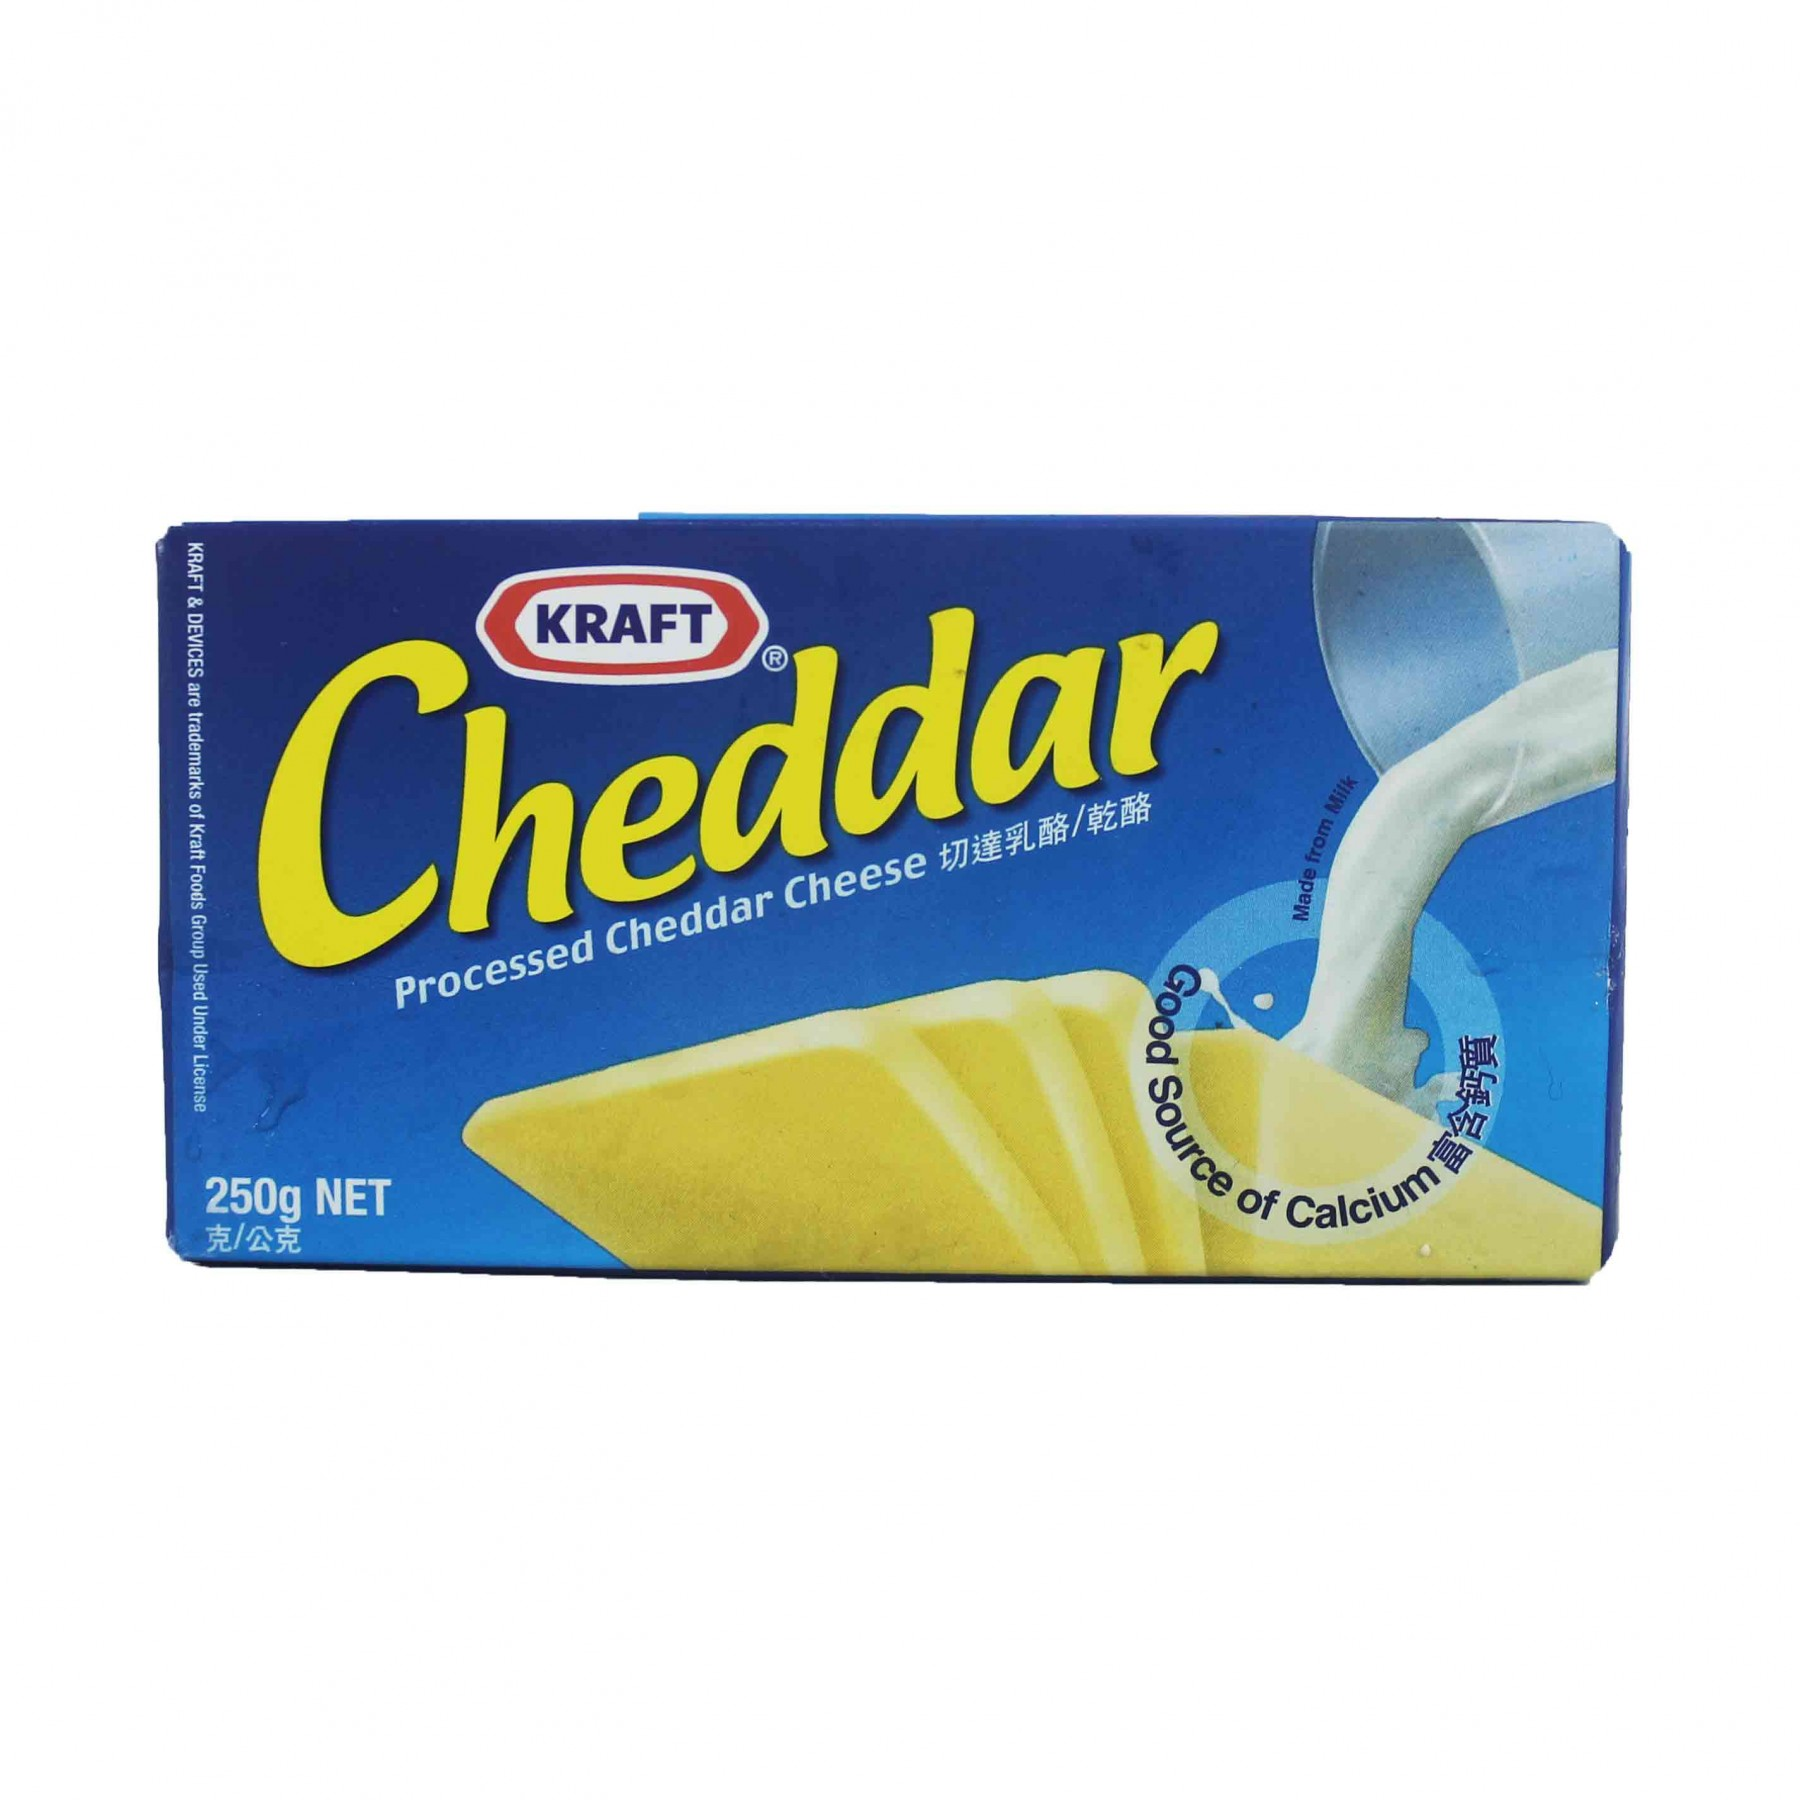 kraft cheddar cheese packet chilled